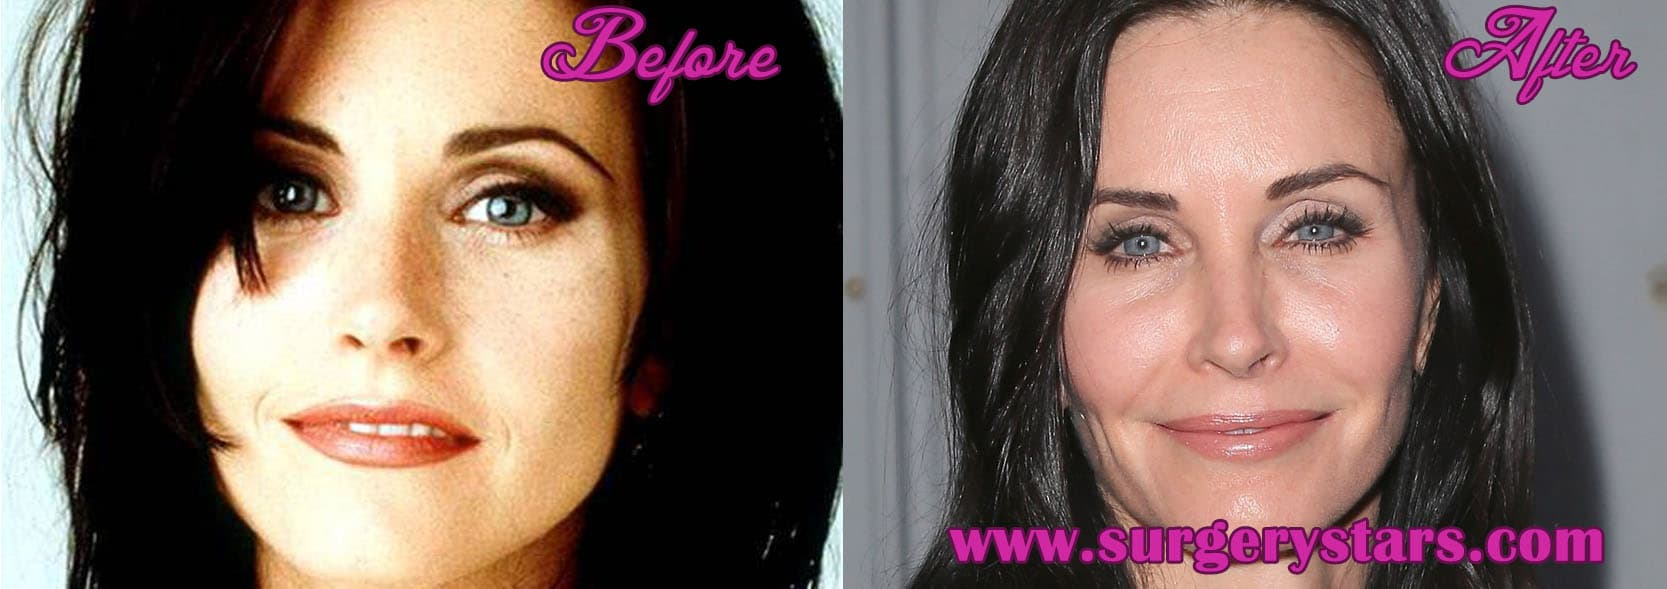 Courtney Cox Before And After Plastic Surgery photo - 1